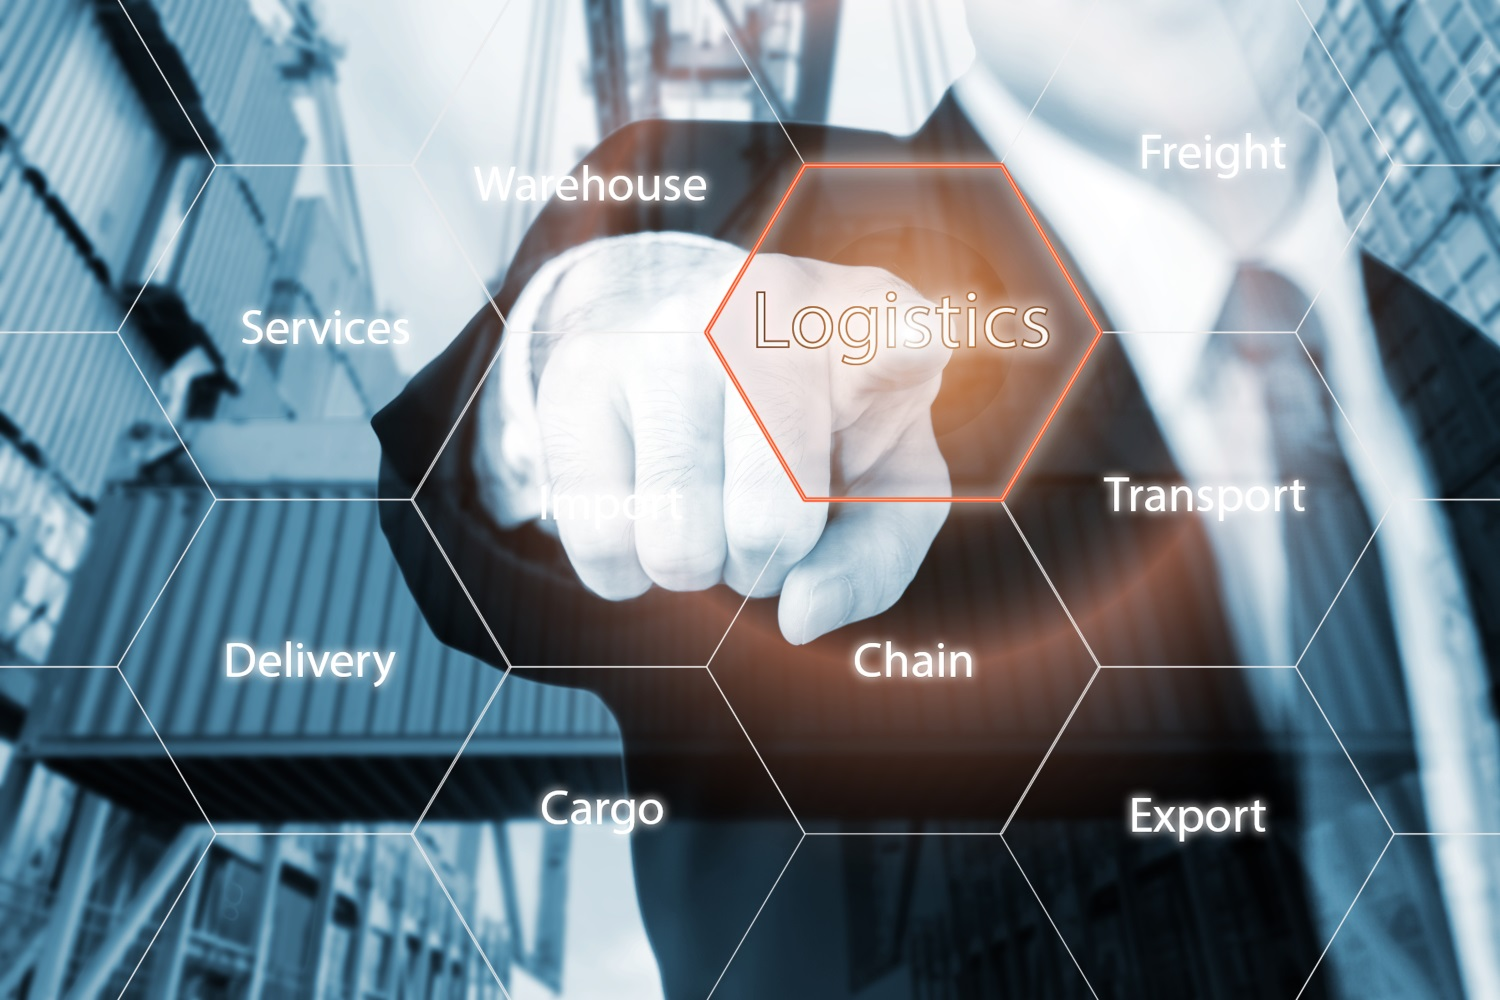 uCloudlink and CVITC Pioneer New Applications for Cloud SIM Technology in Smart Containers and Container Logistics